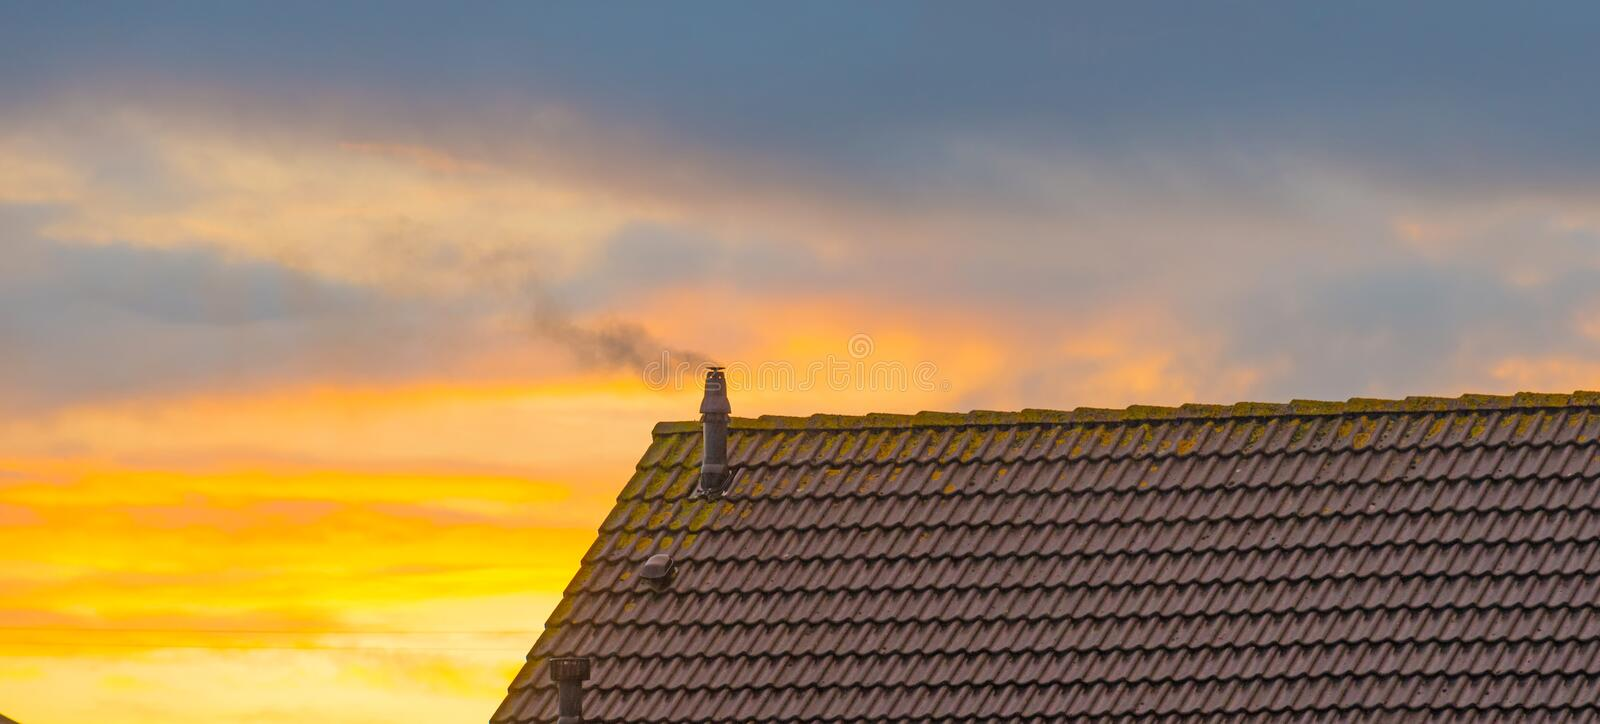 Smoking chimney on a roof at sunrise at fall. Smoking chimney on a roof at sunrise in autumn stock photo